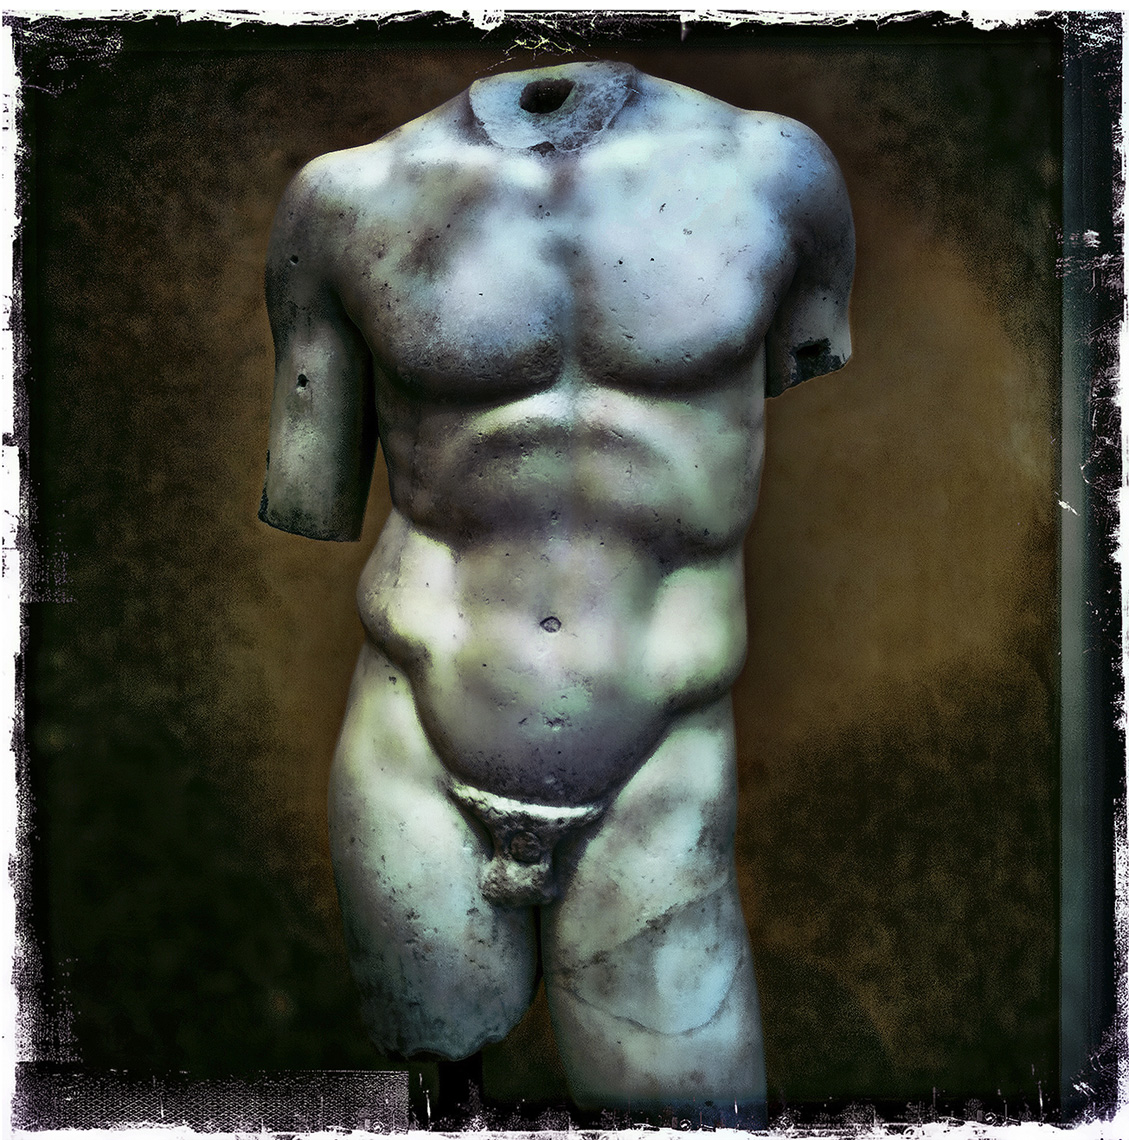 davidhoptman_still-life-photo-MALE TORSO STILL I PHONE